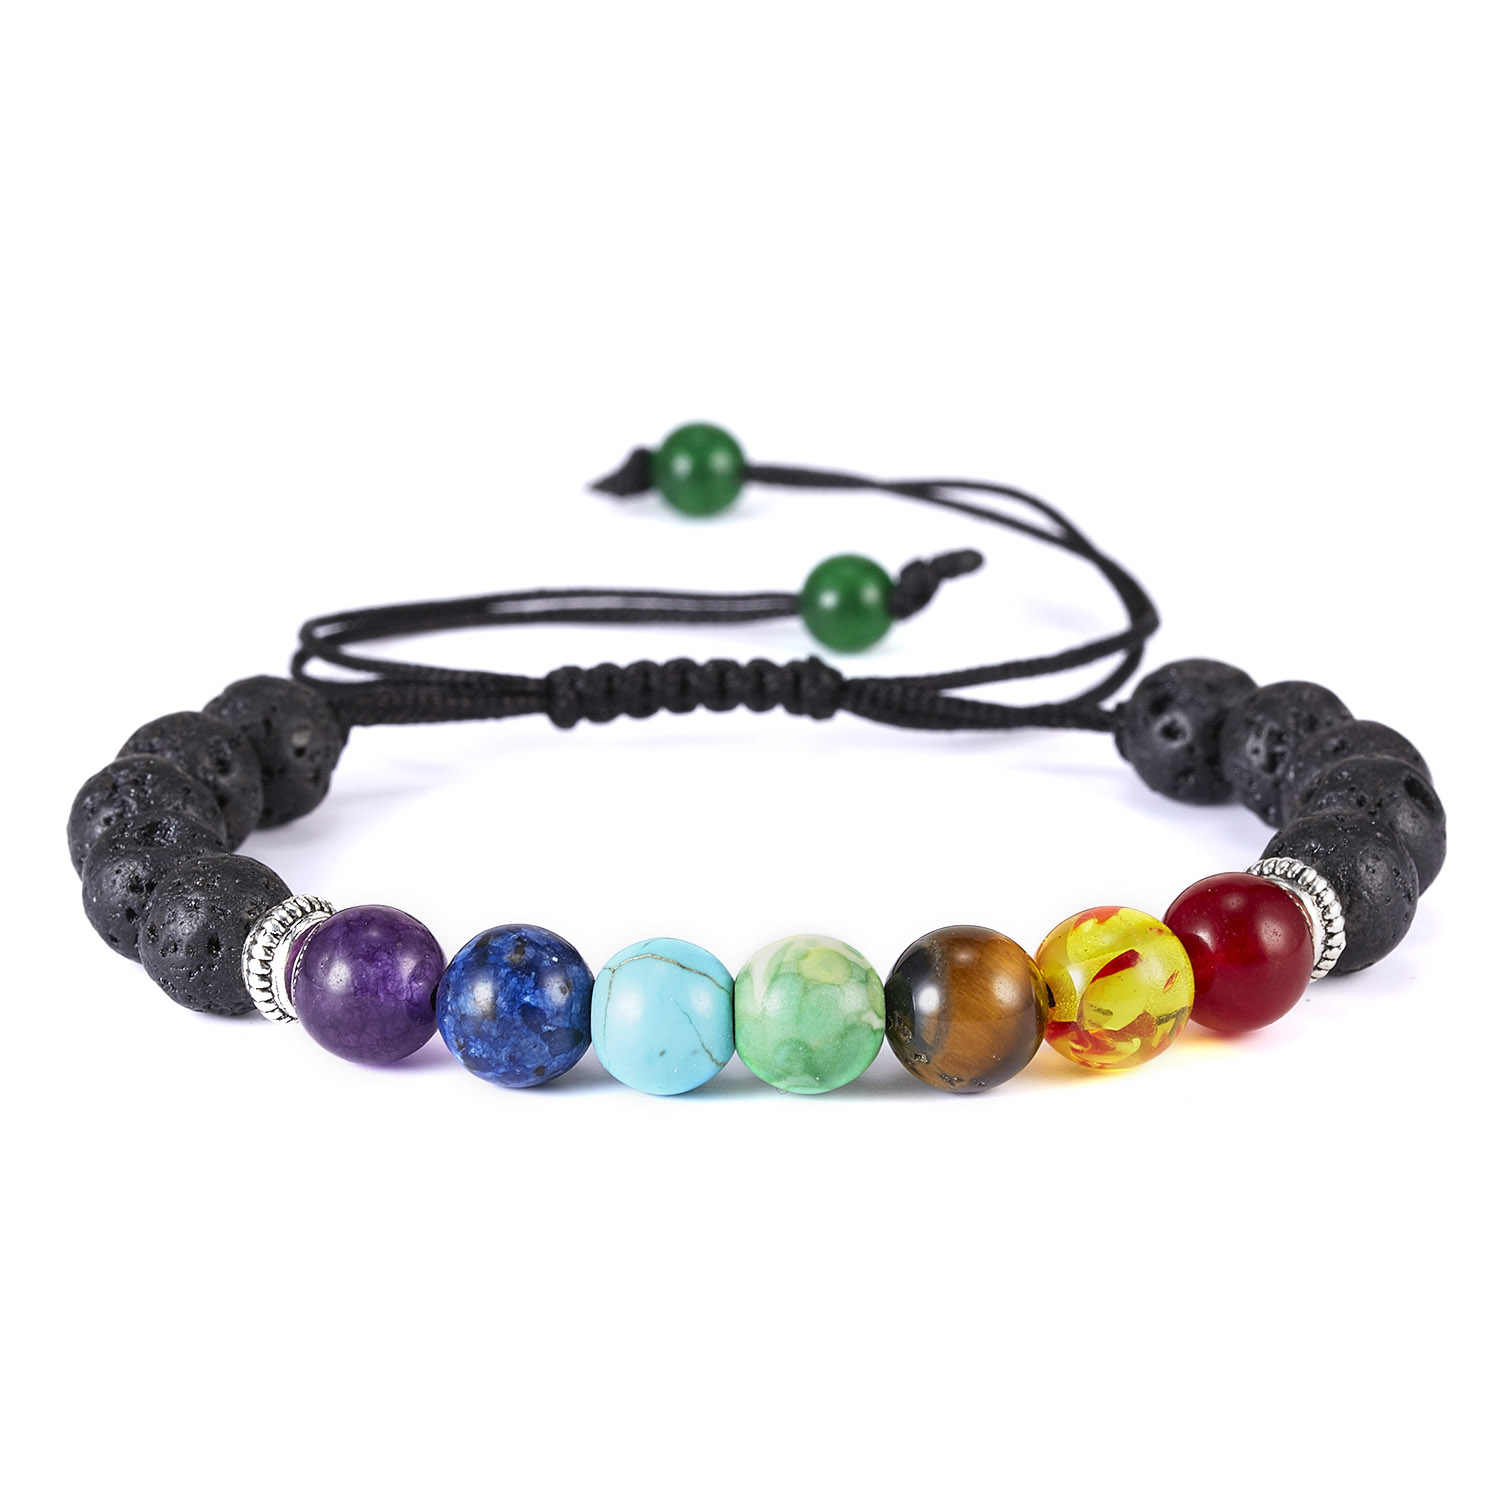 Classic Chakra 8mm Lava Stone Beads 7 Color Chain Bracelets for Women Men Elastic Rope Yoga Fashion A Bracelet Friendship